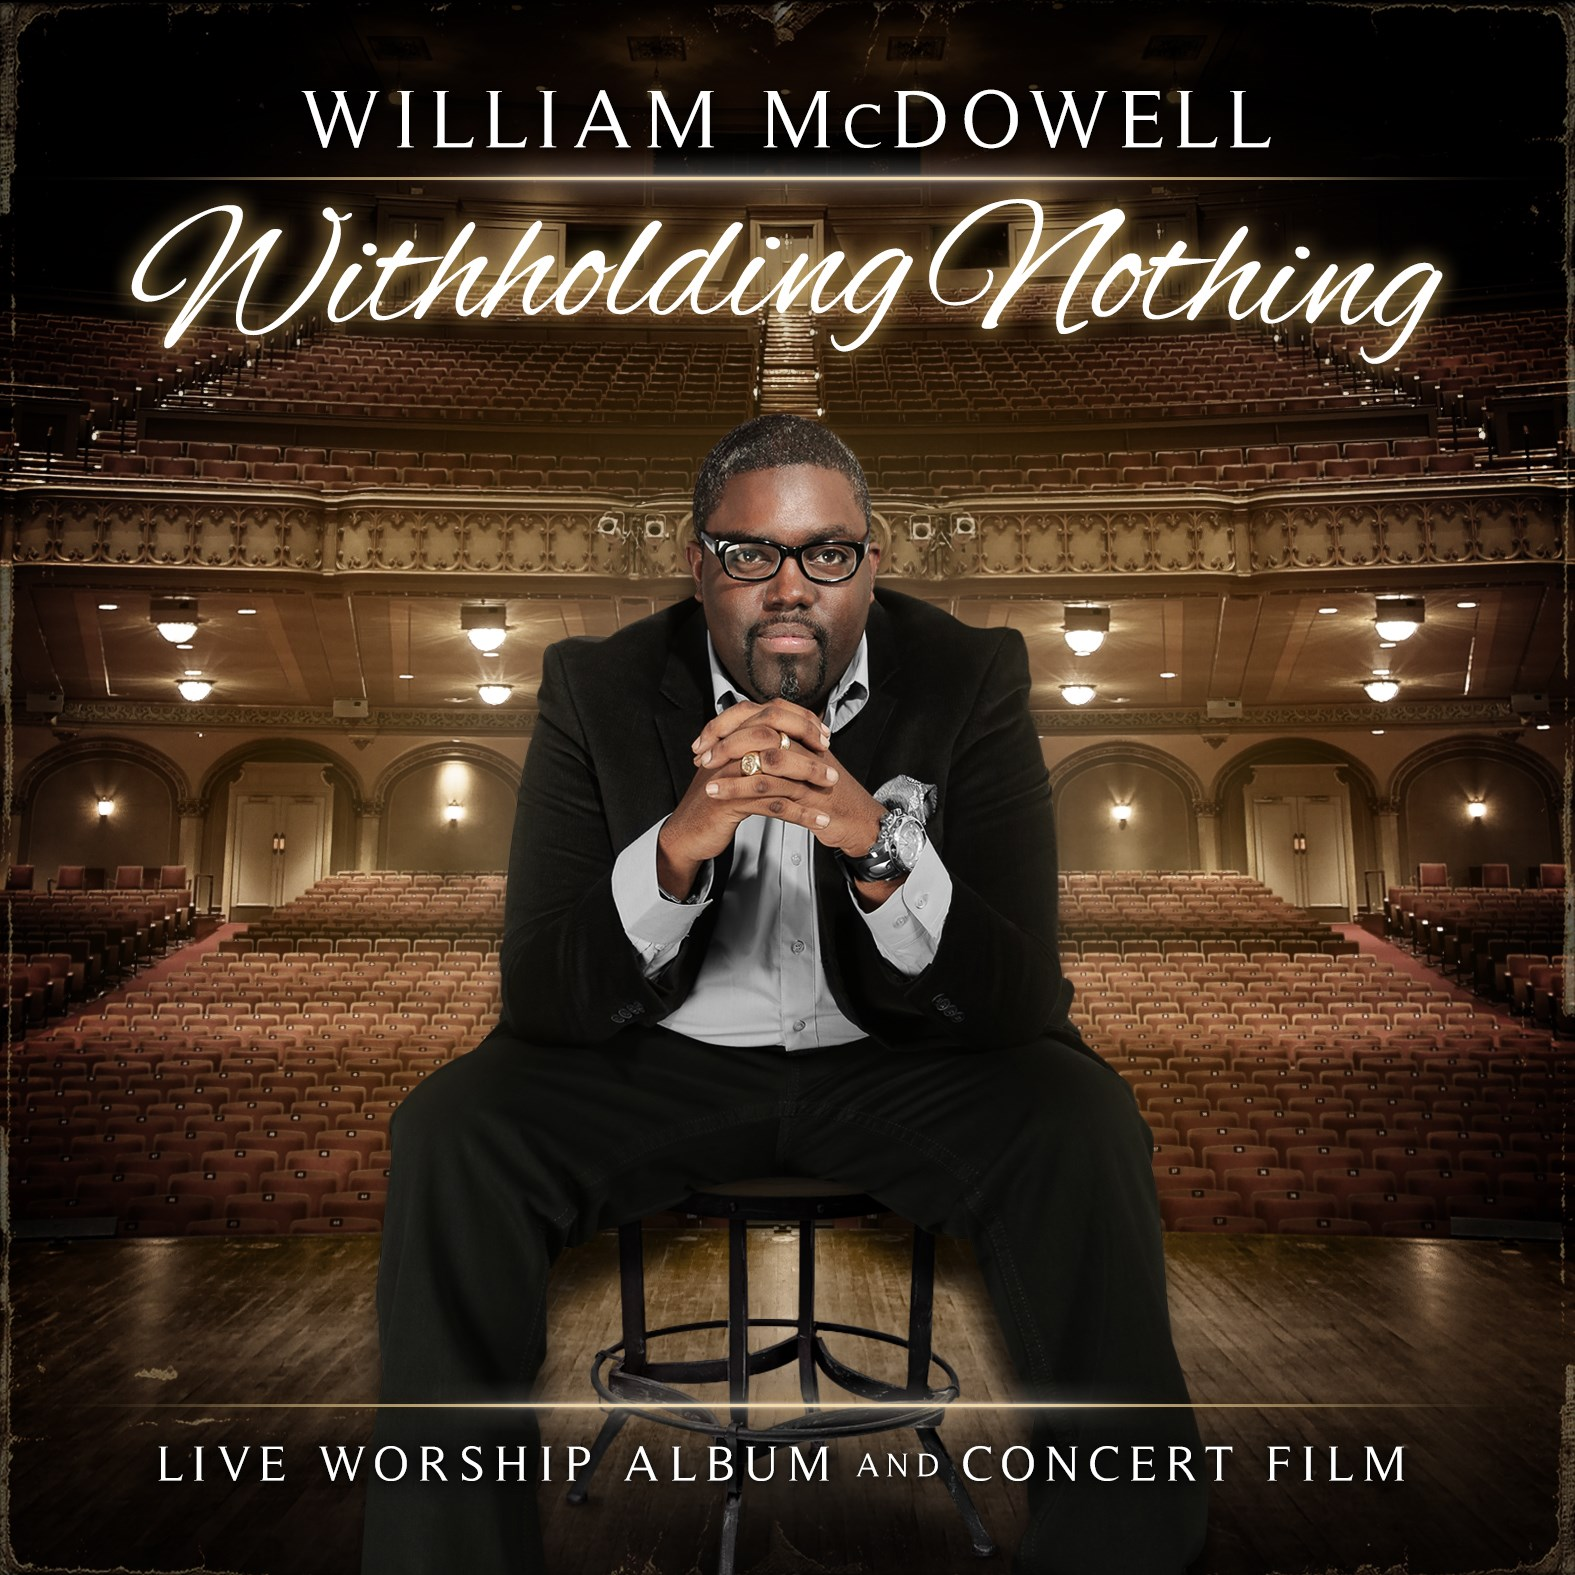 William McDowell: Withholding Nothing